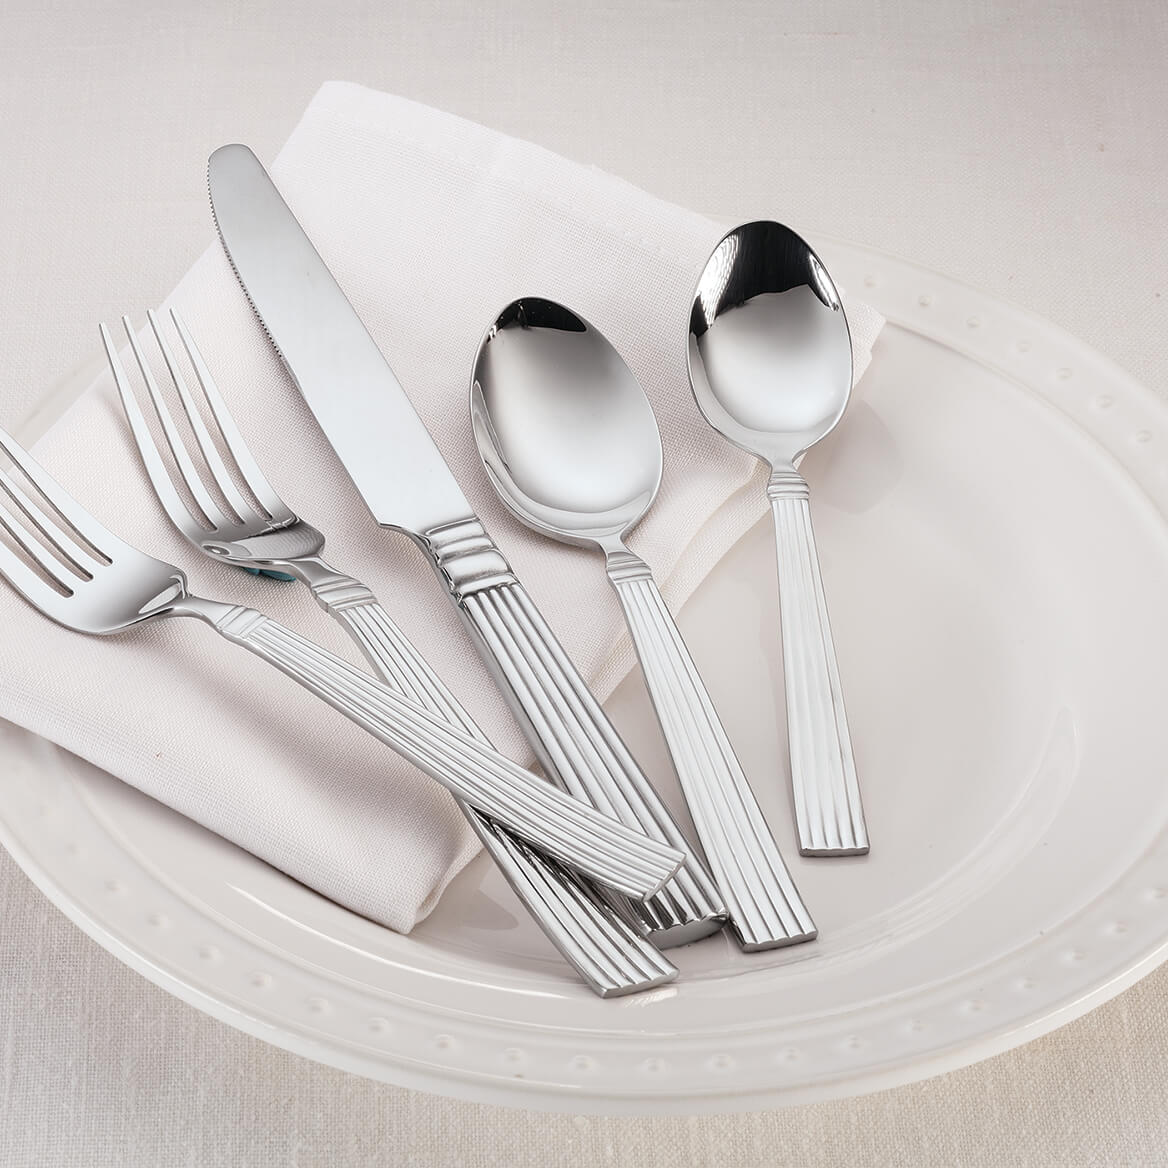 William Roberts Pillar 45-Pc. Stainless Steel Flatware Set-367550